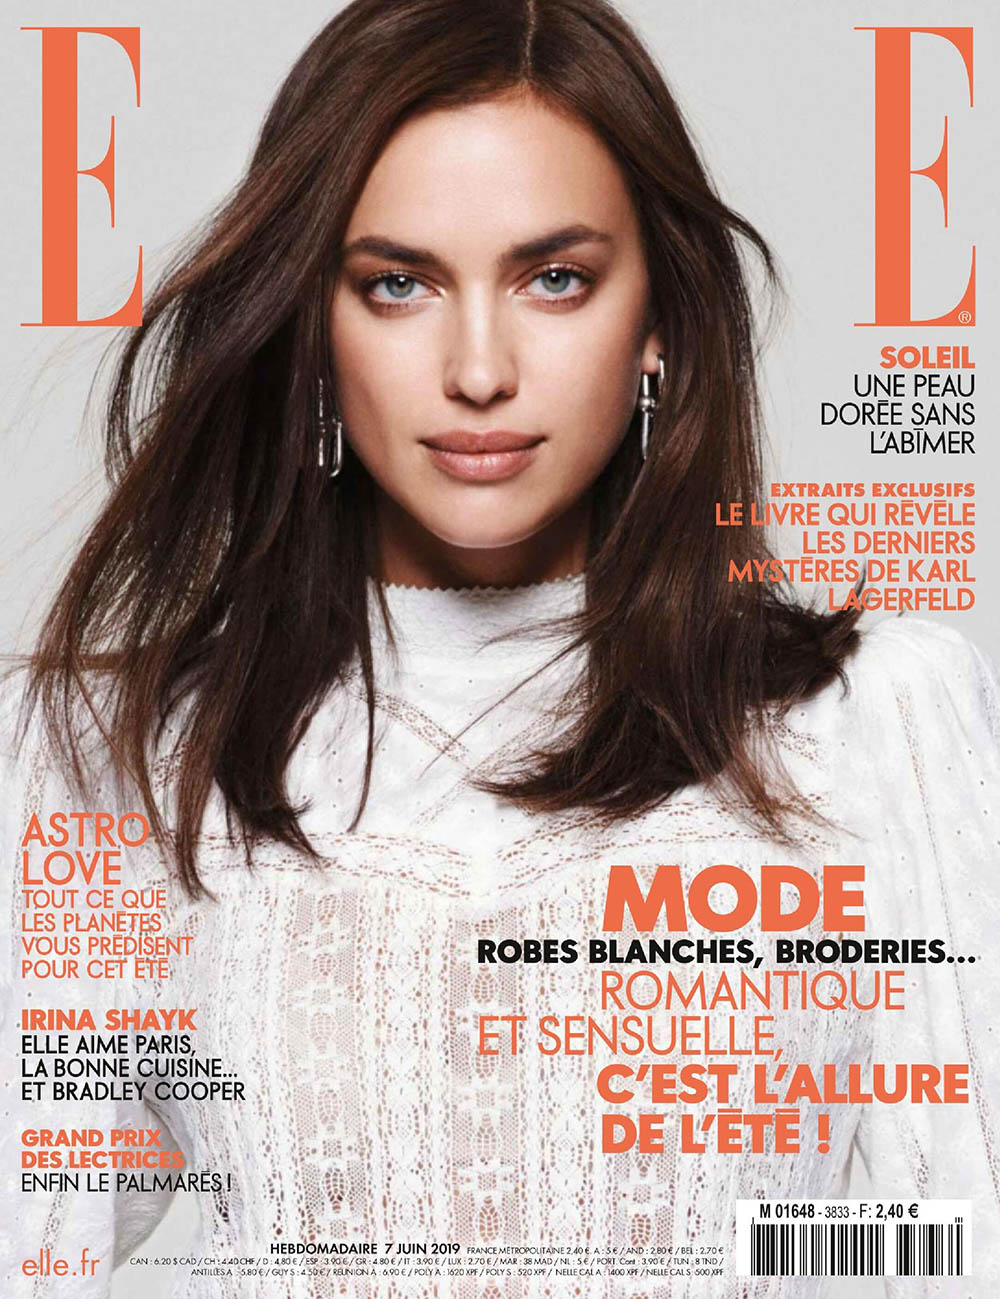 Irina Shayk covers Elle France June 7th, 2019 by Jan Welters